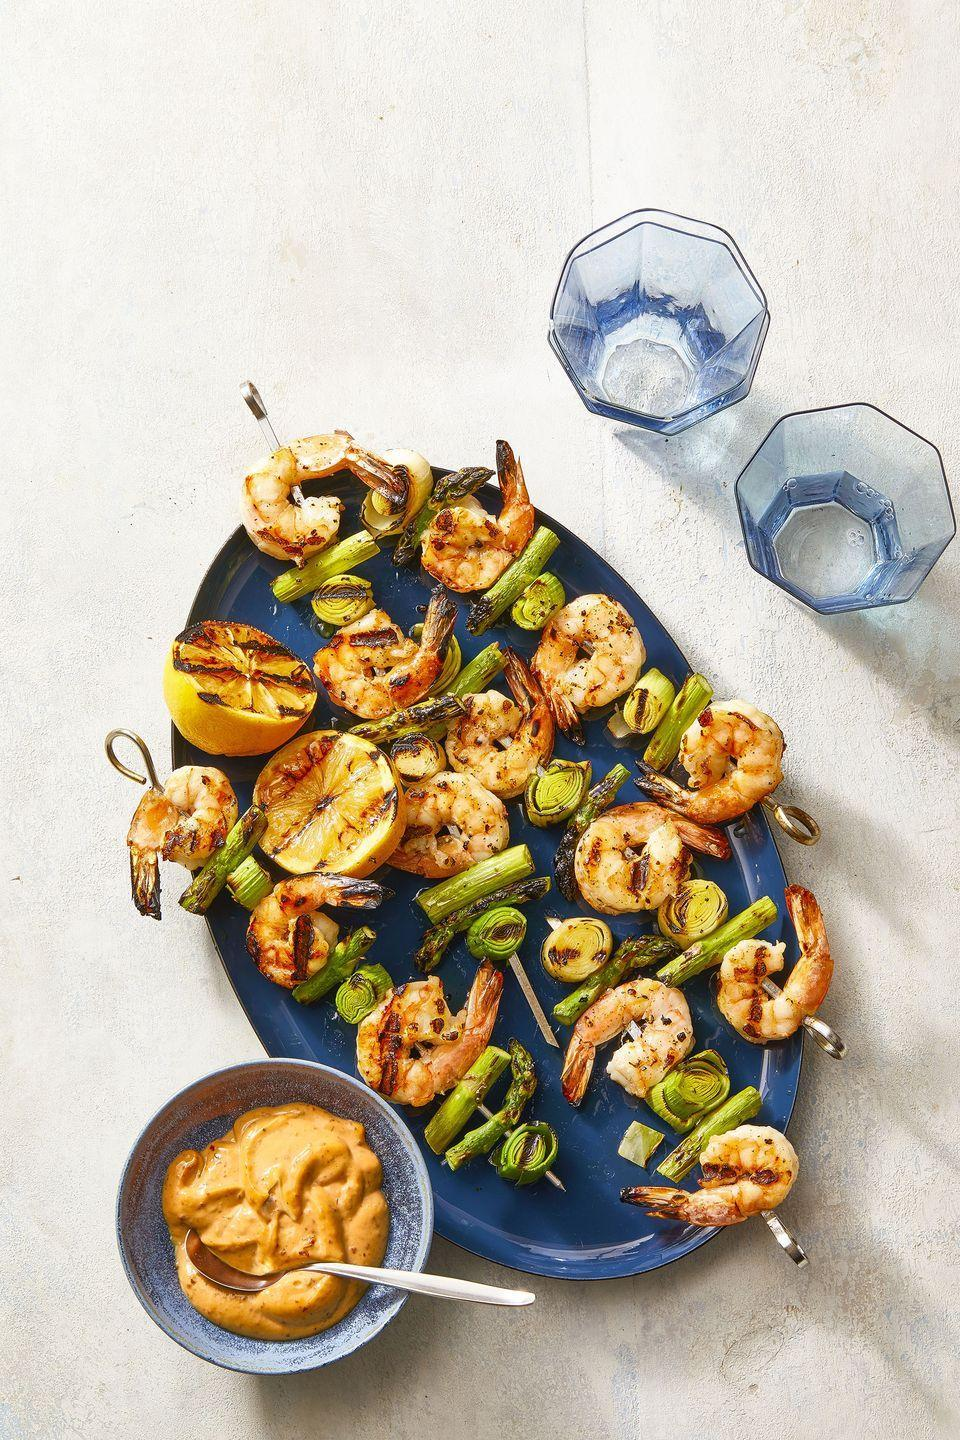 """<p>If you're grilling, these spring veggie-and-shrimp skewers are so simple to make.</p><p><a href=""""https://www.womansday.com/food-recipes/a36040238/charred-shrimp-leek-and-asparagus-skewers-recipe/"""" rel=""""nofollow noopener"""" target=""""_blank"""" data-ylk=""""slk:Get the recipe for Charred Shrimp, Leek and Asparagus Skewers."""" class=""""link rapid-noclick-resp""""><em>Get the recipe for Charred Shrimp, Leek and Asparagus Skewers.</em></a></p>"""